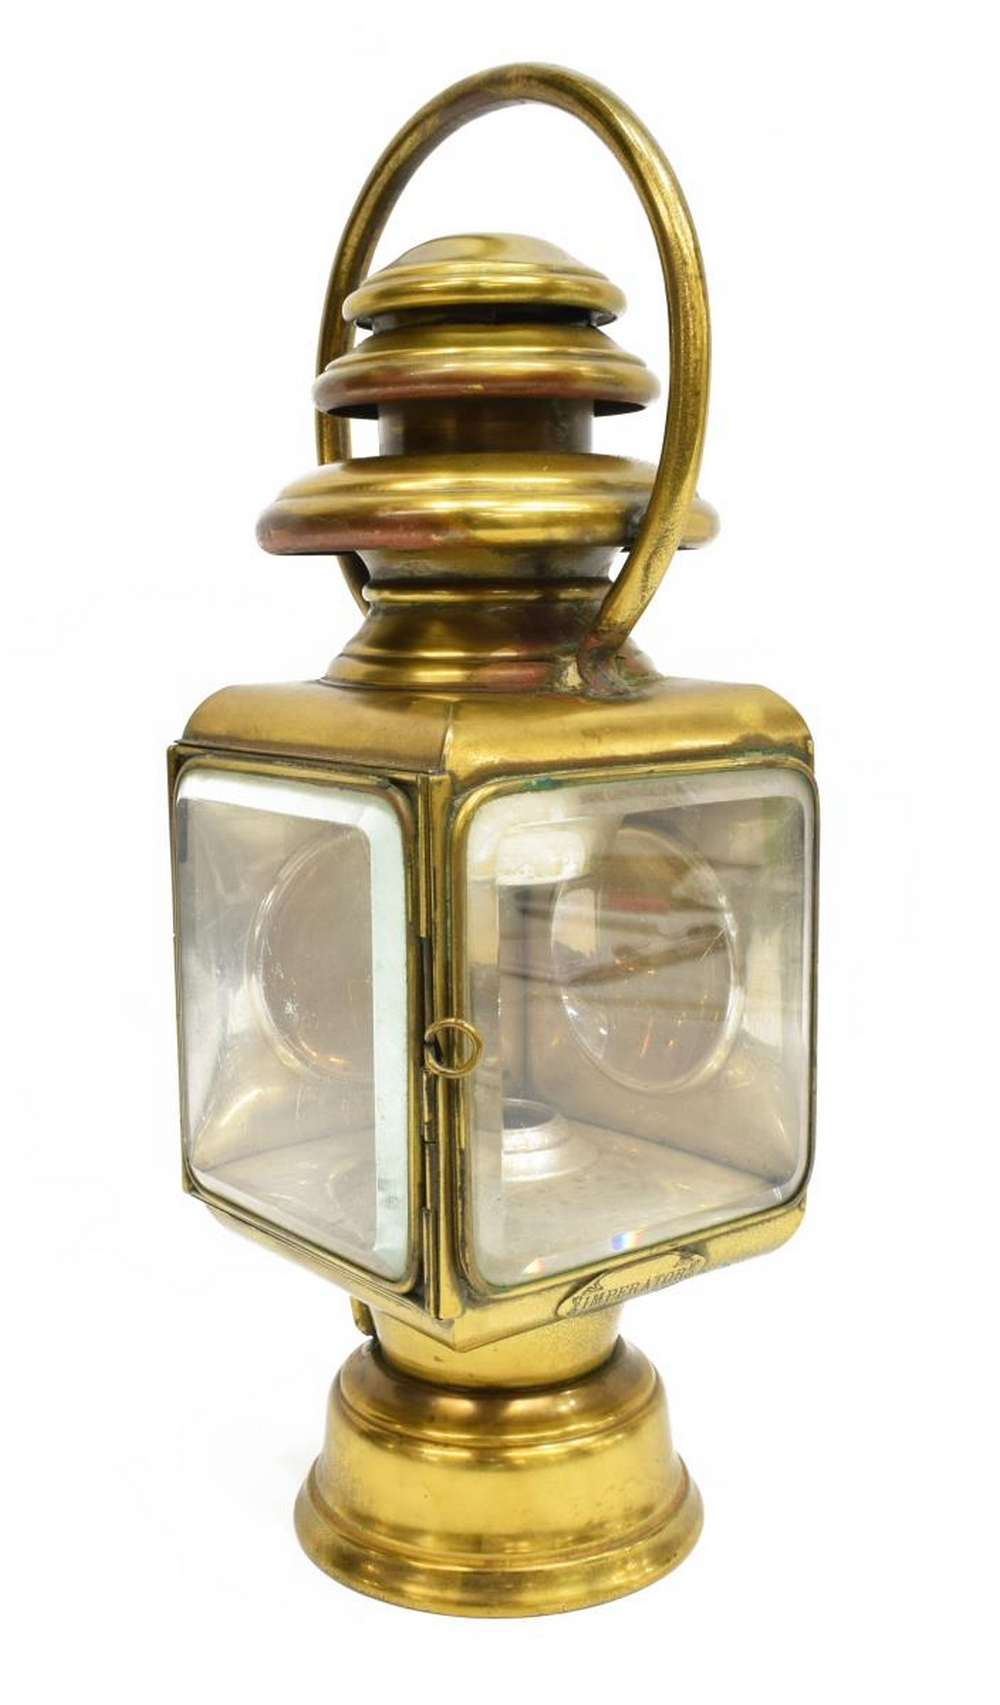 ANTIQUE FRENCH BRASS & NICKEL CARRIAGE LAMP